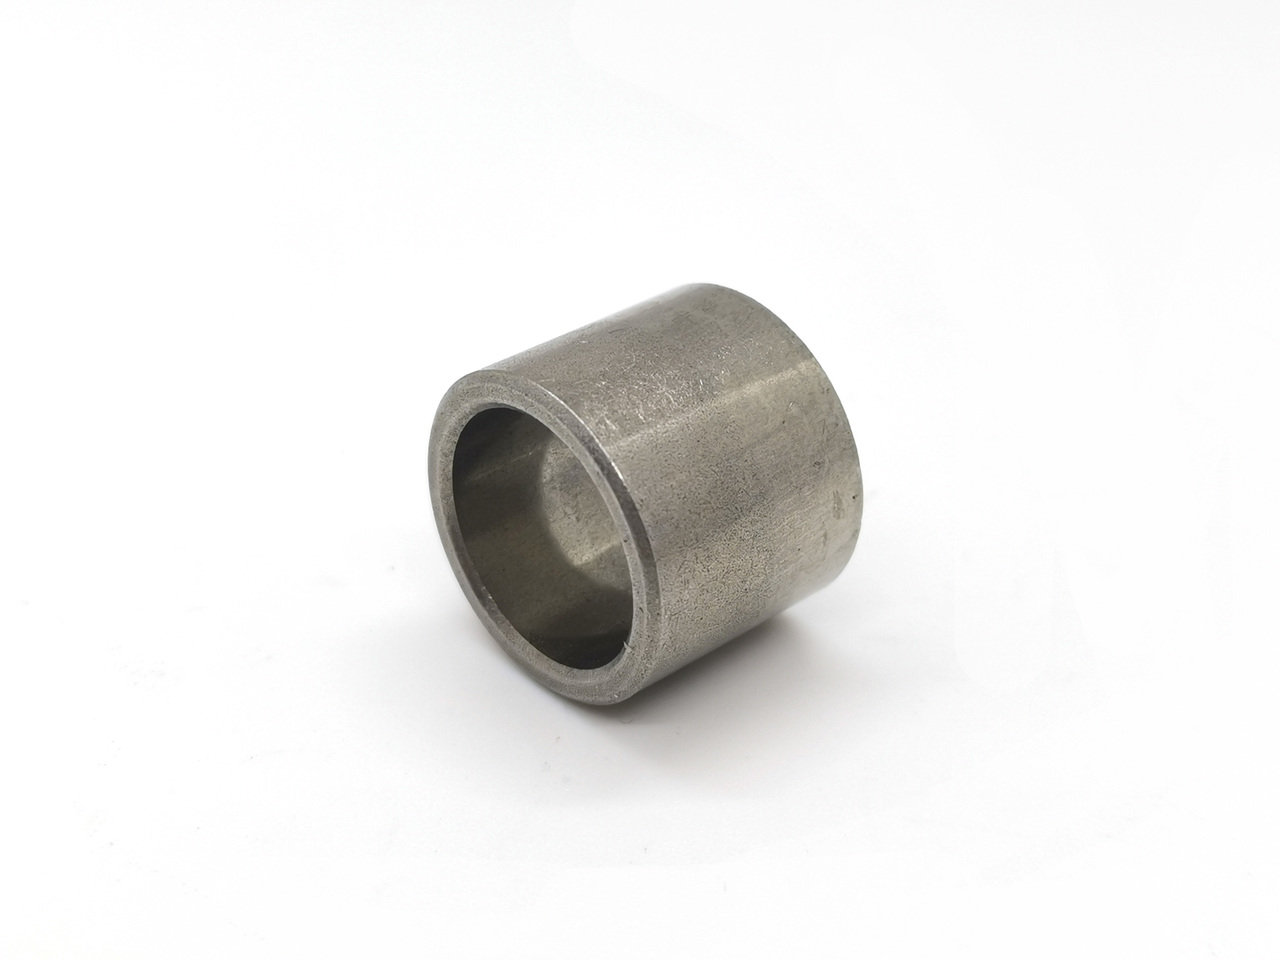 Bush, starter shaft - 101 941 TOPRAN